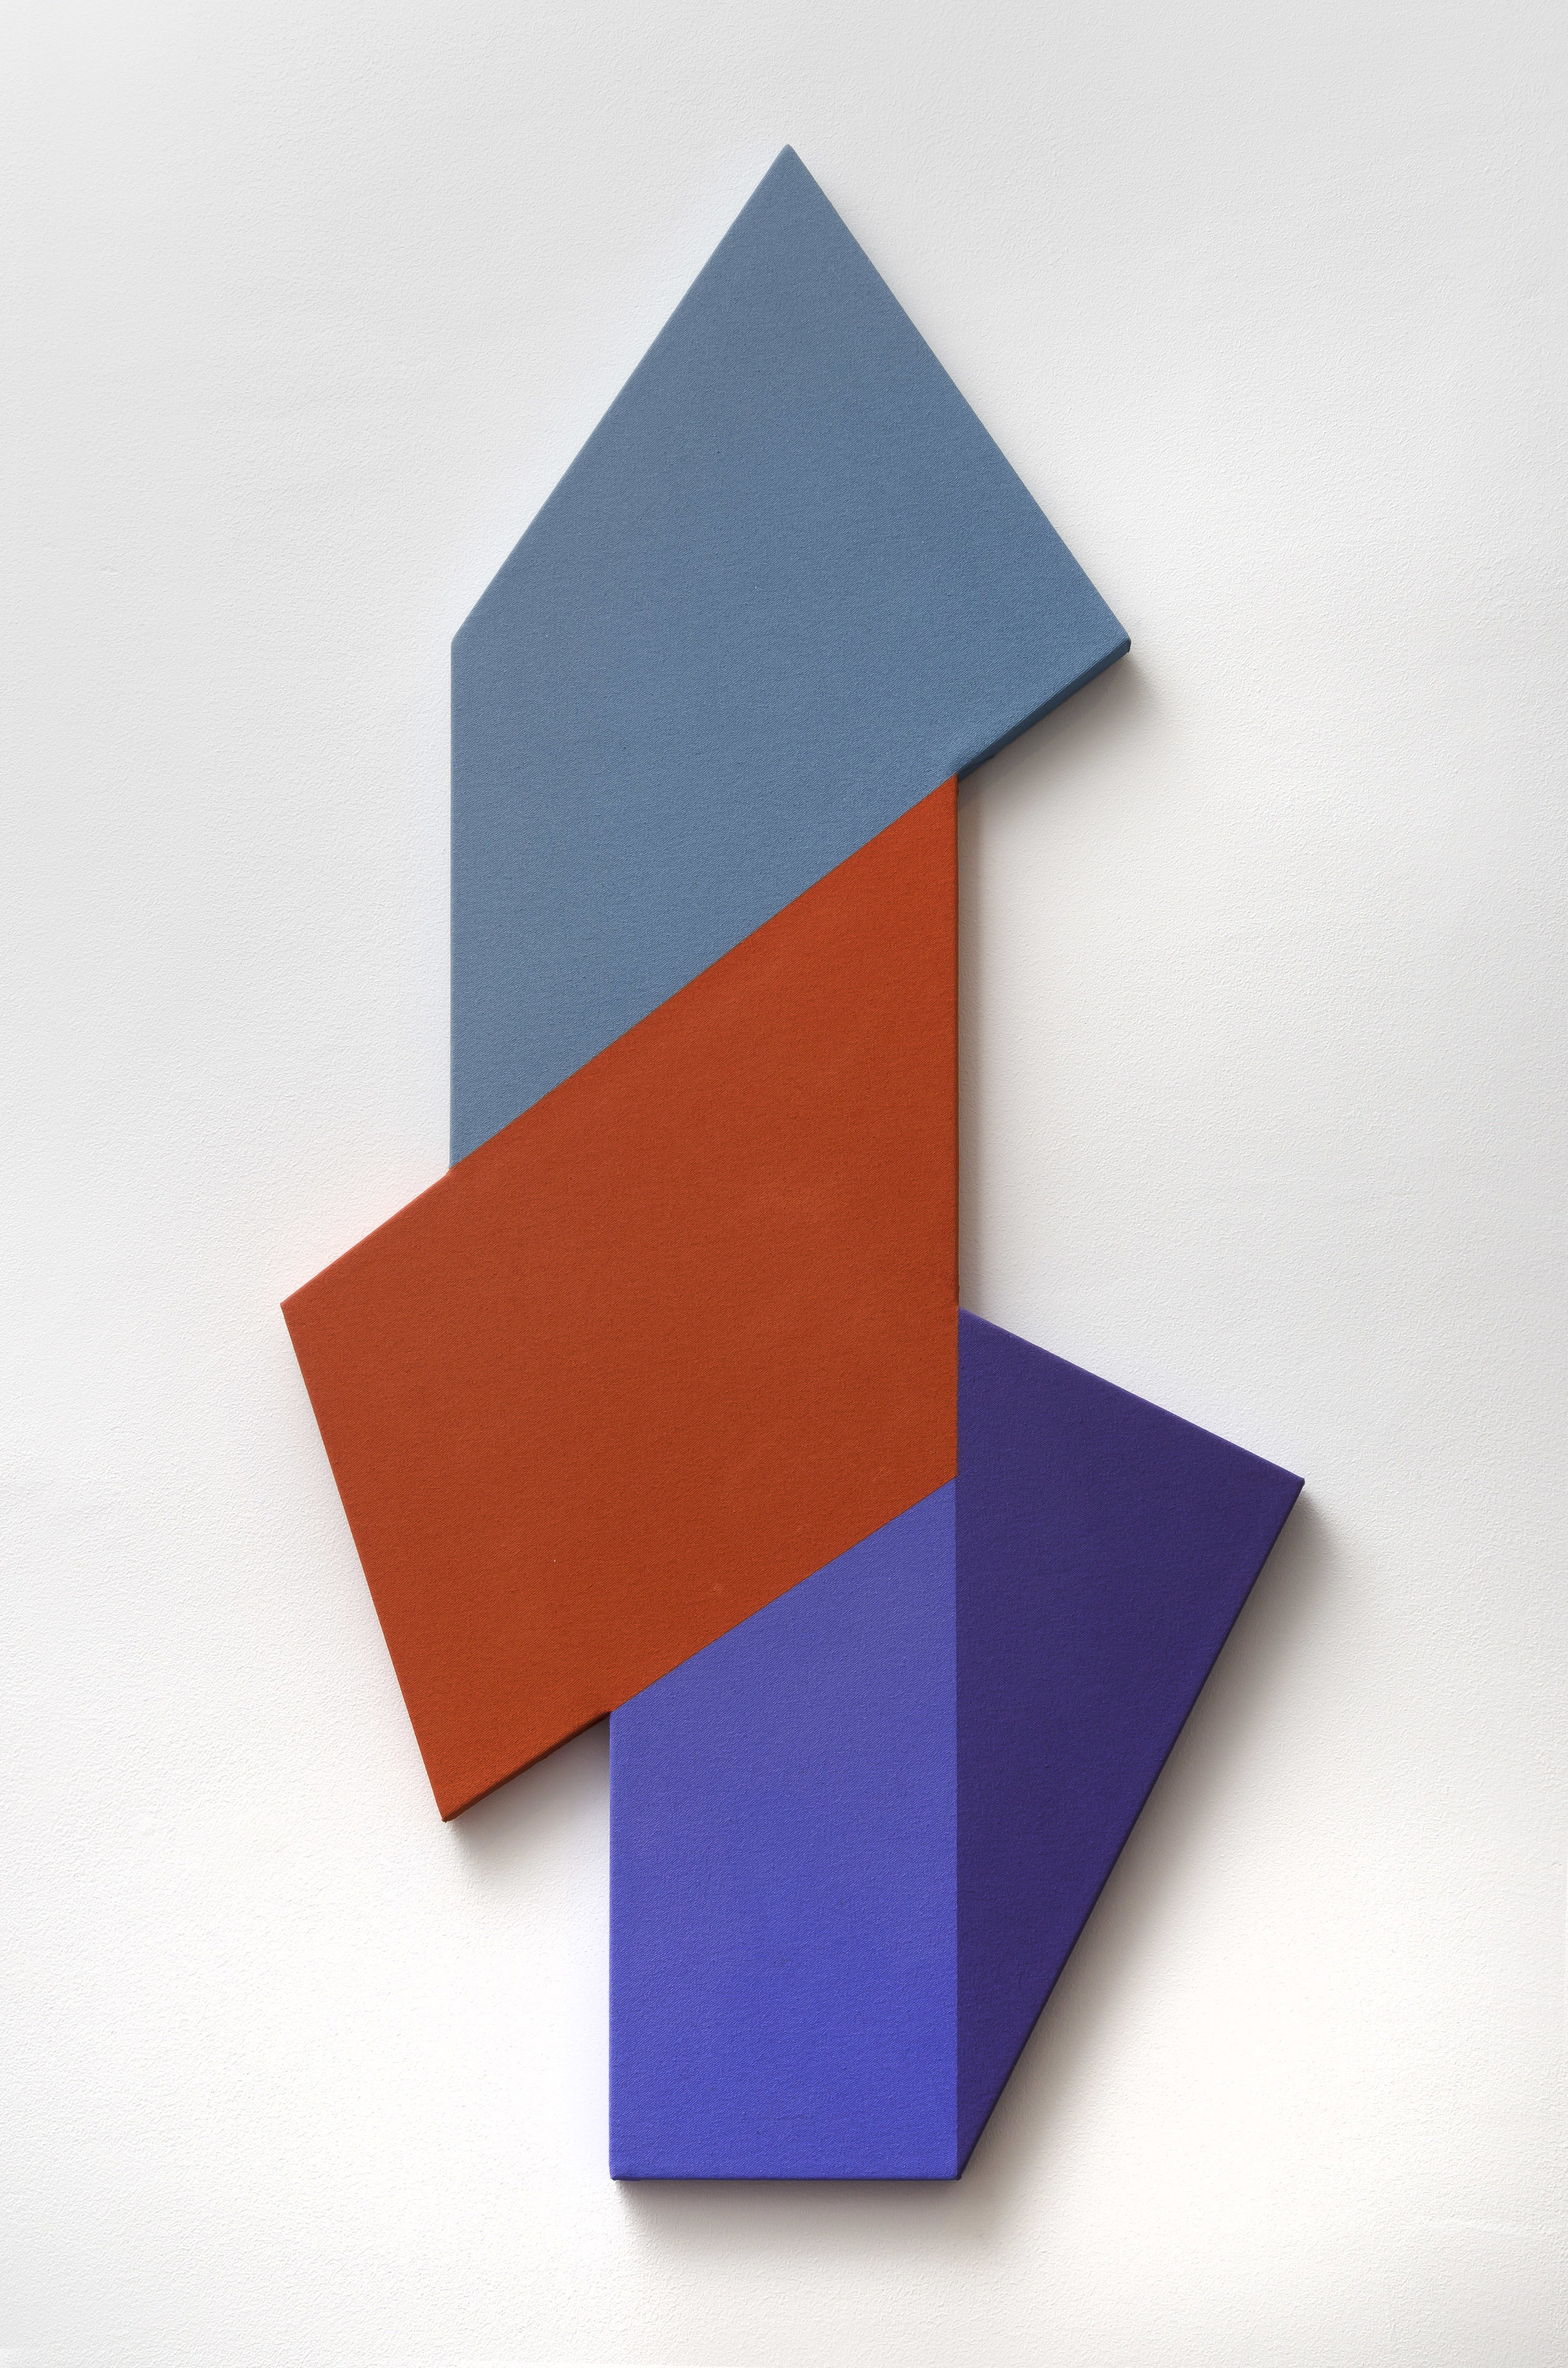 Mokha Laget, b. 1959   Bebop , 2018  acrylic and clay paint on shaped canvas  48 x 24 inches; 121.9 x 61 centimeters